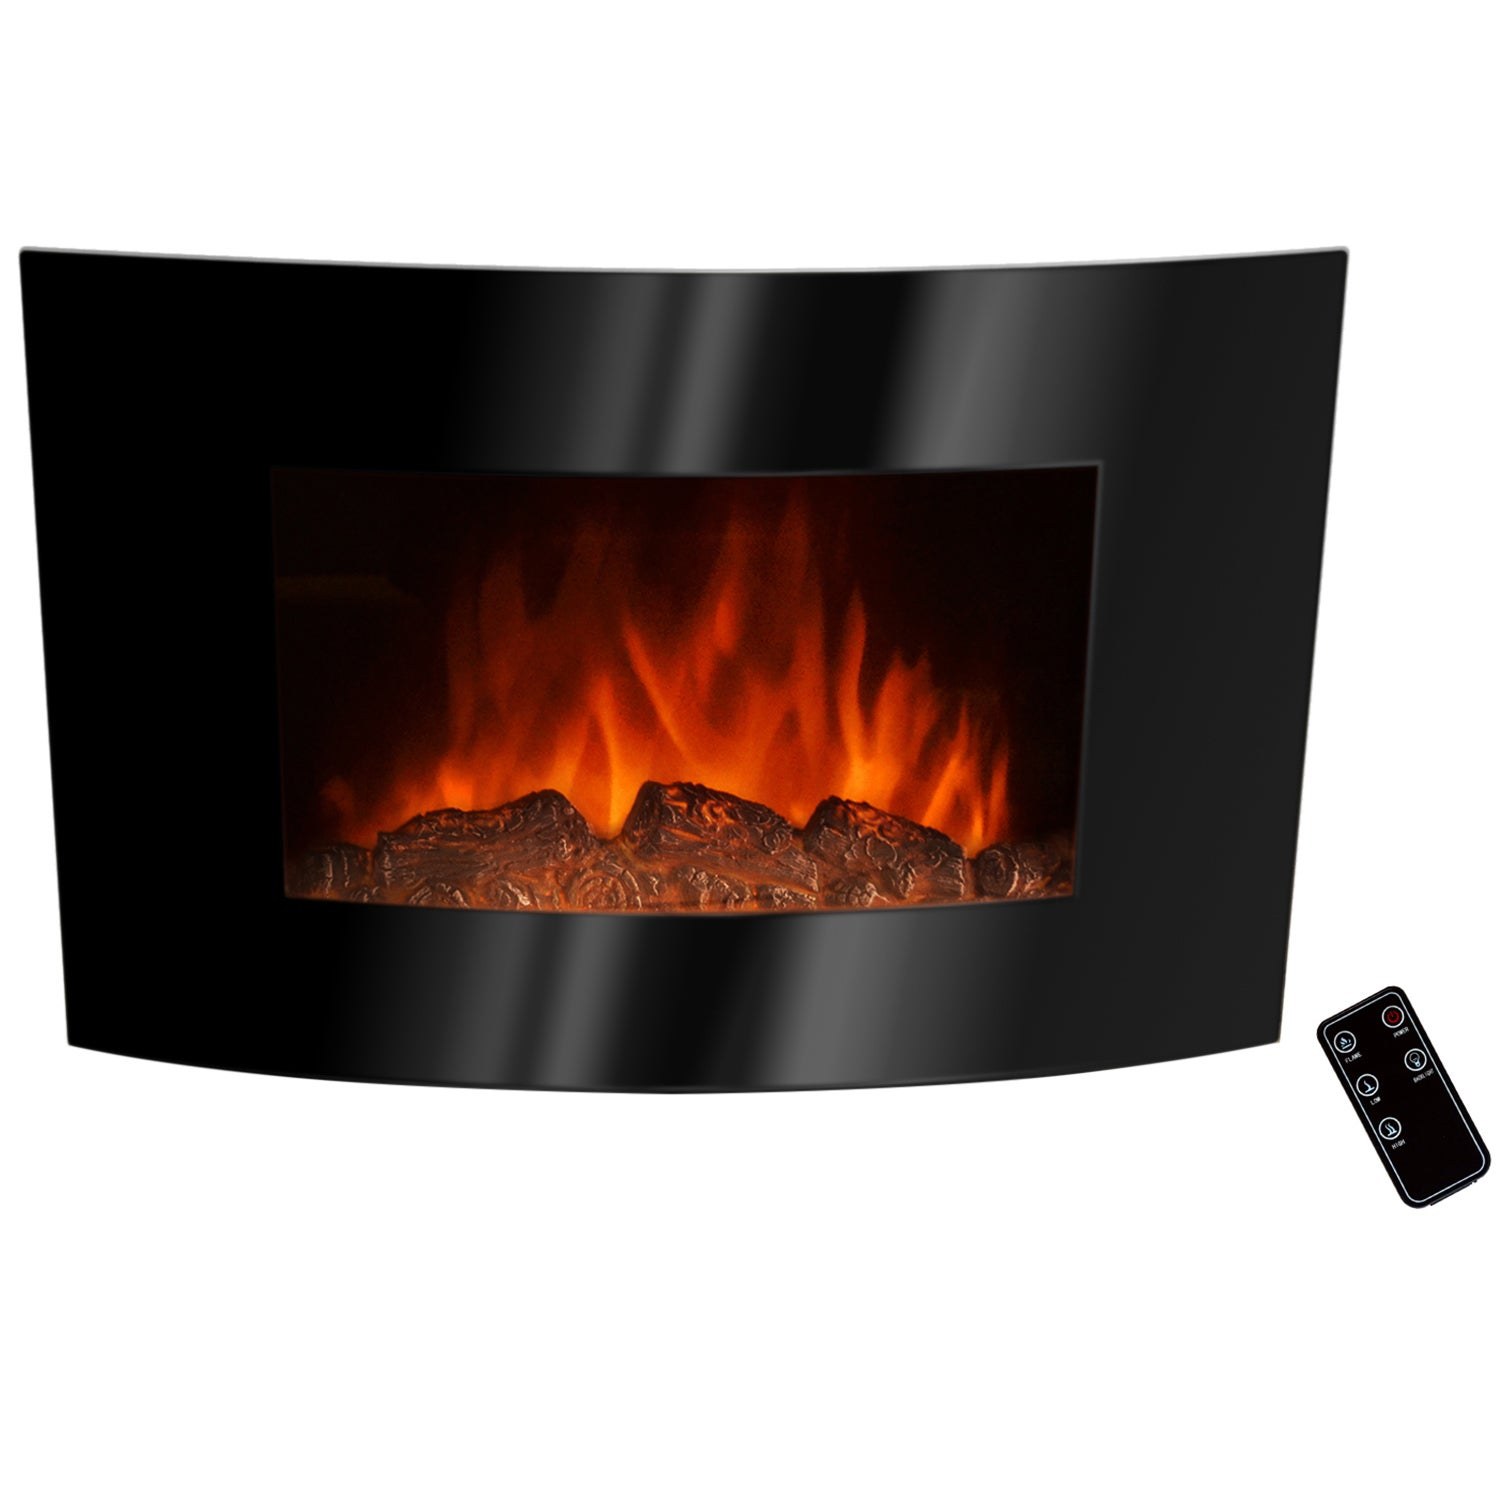 AKDY Golden Vantage 36-inch Black Wall Mount Indoor Heater Electric Fireplace